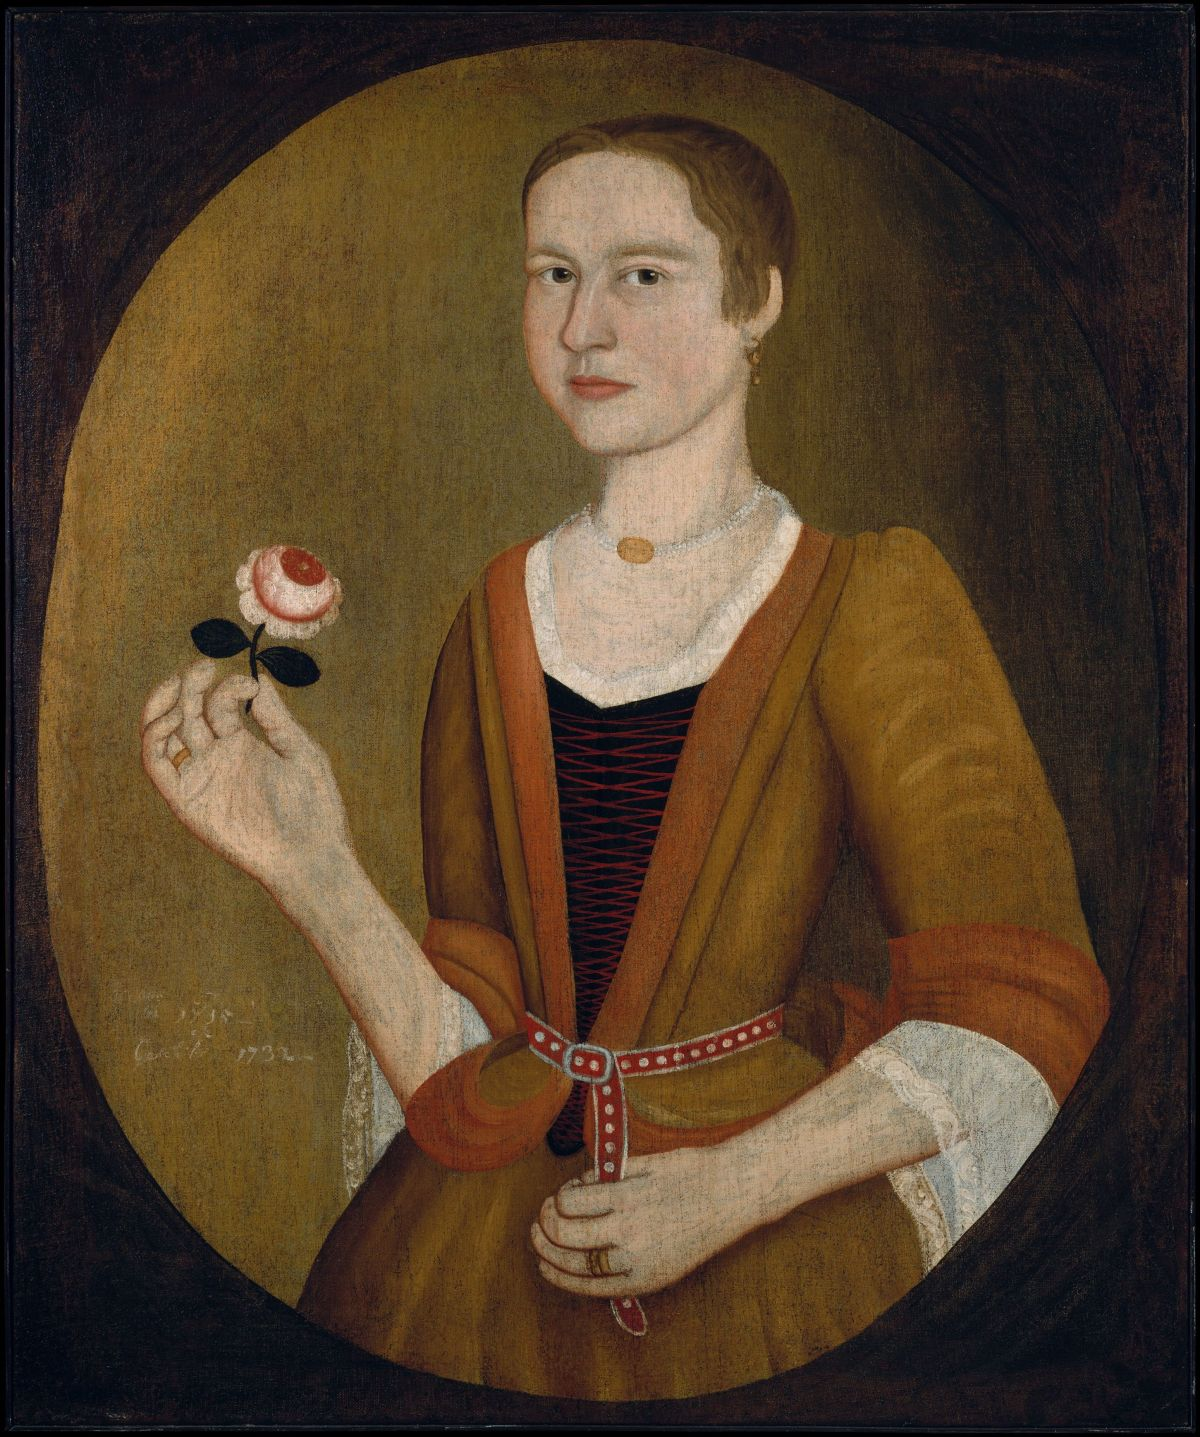 Young Lady with a Rose by Pieter Vanderlyn